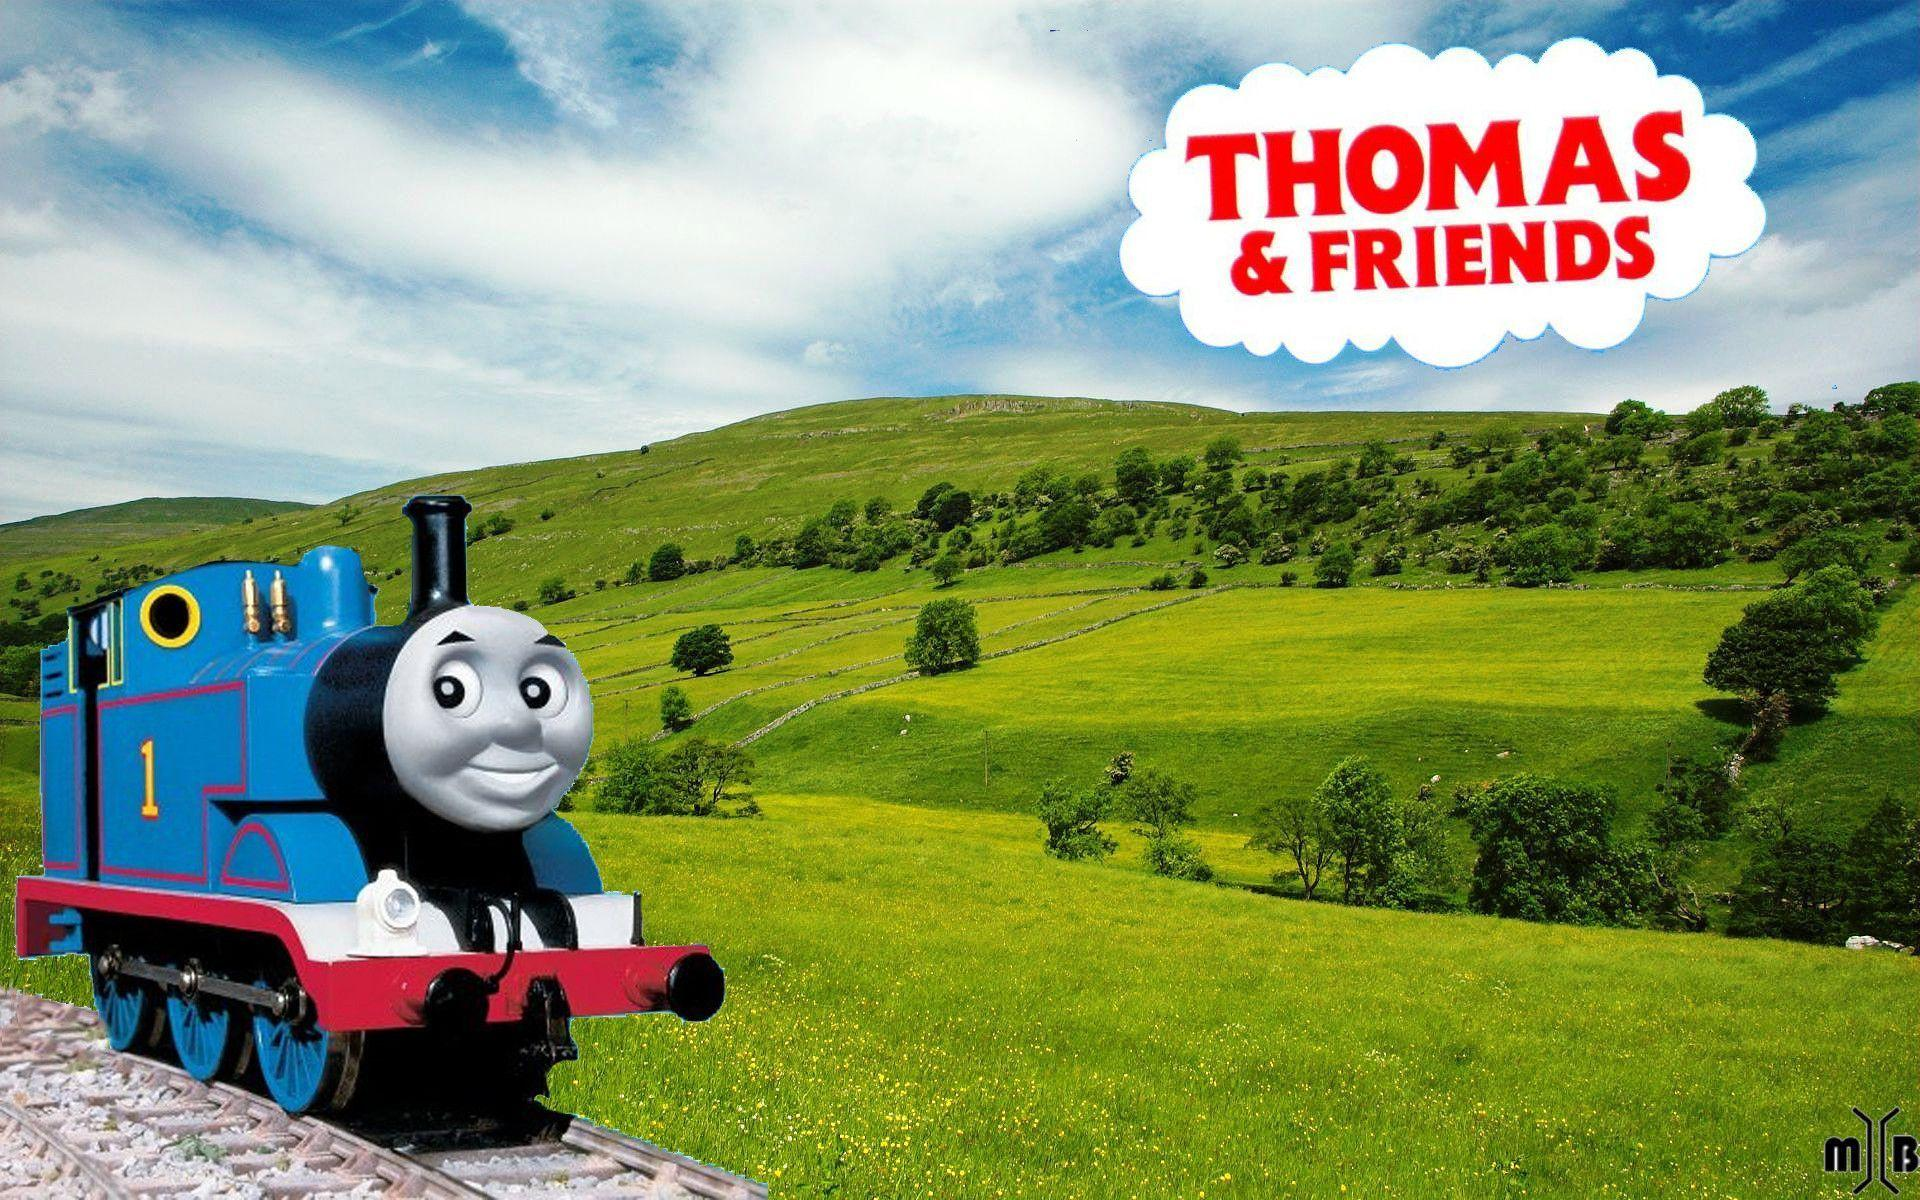 thomas wallpapers wallpaper cave Henry Train Clip Art Percy the Train Toys